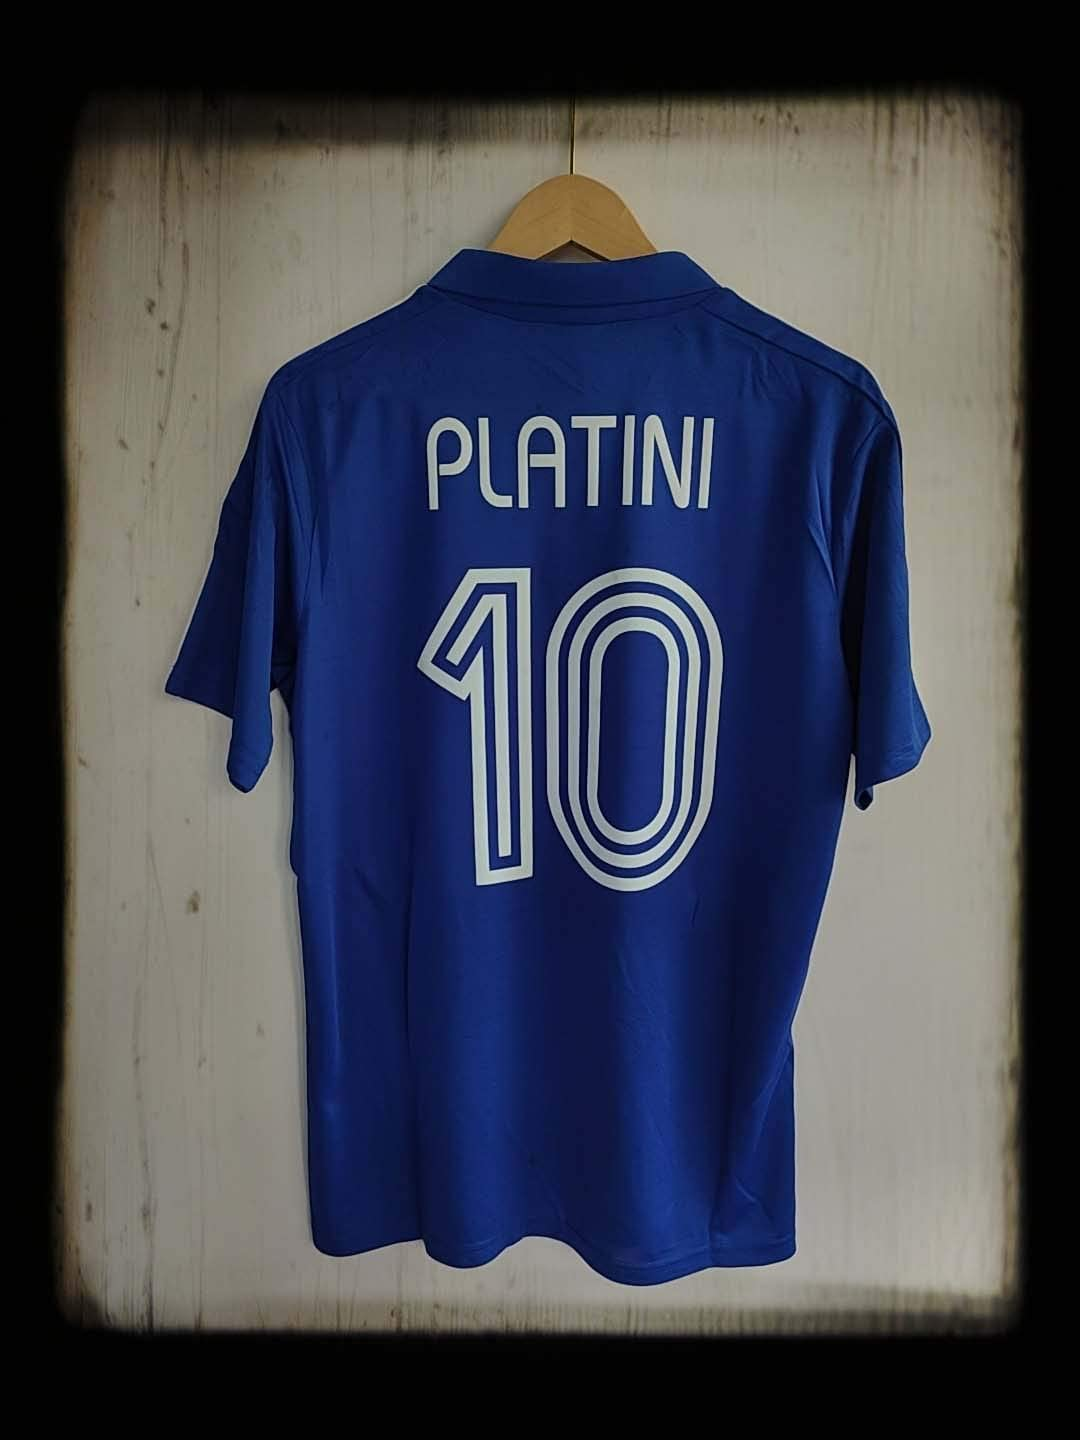 FM Michael PLATINI#10 France Home Retro Jersey 1984 Blue Color